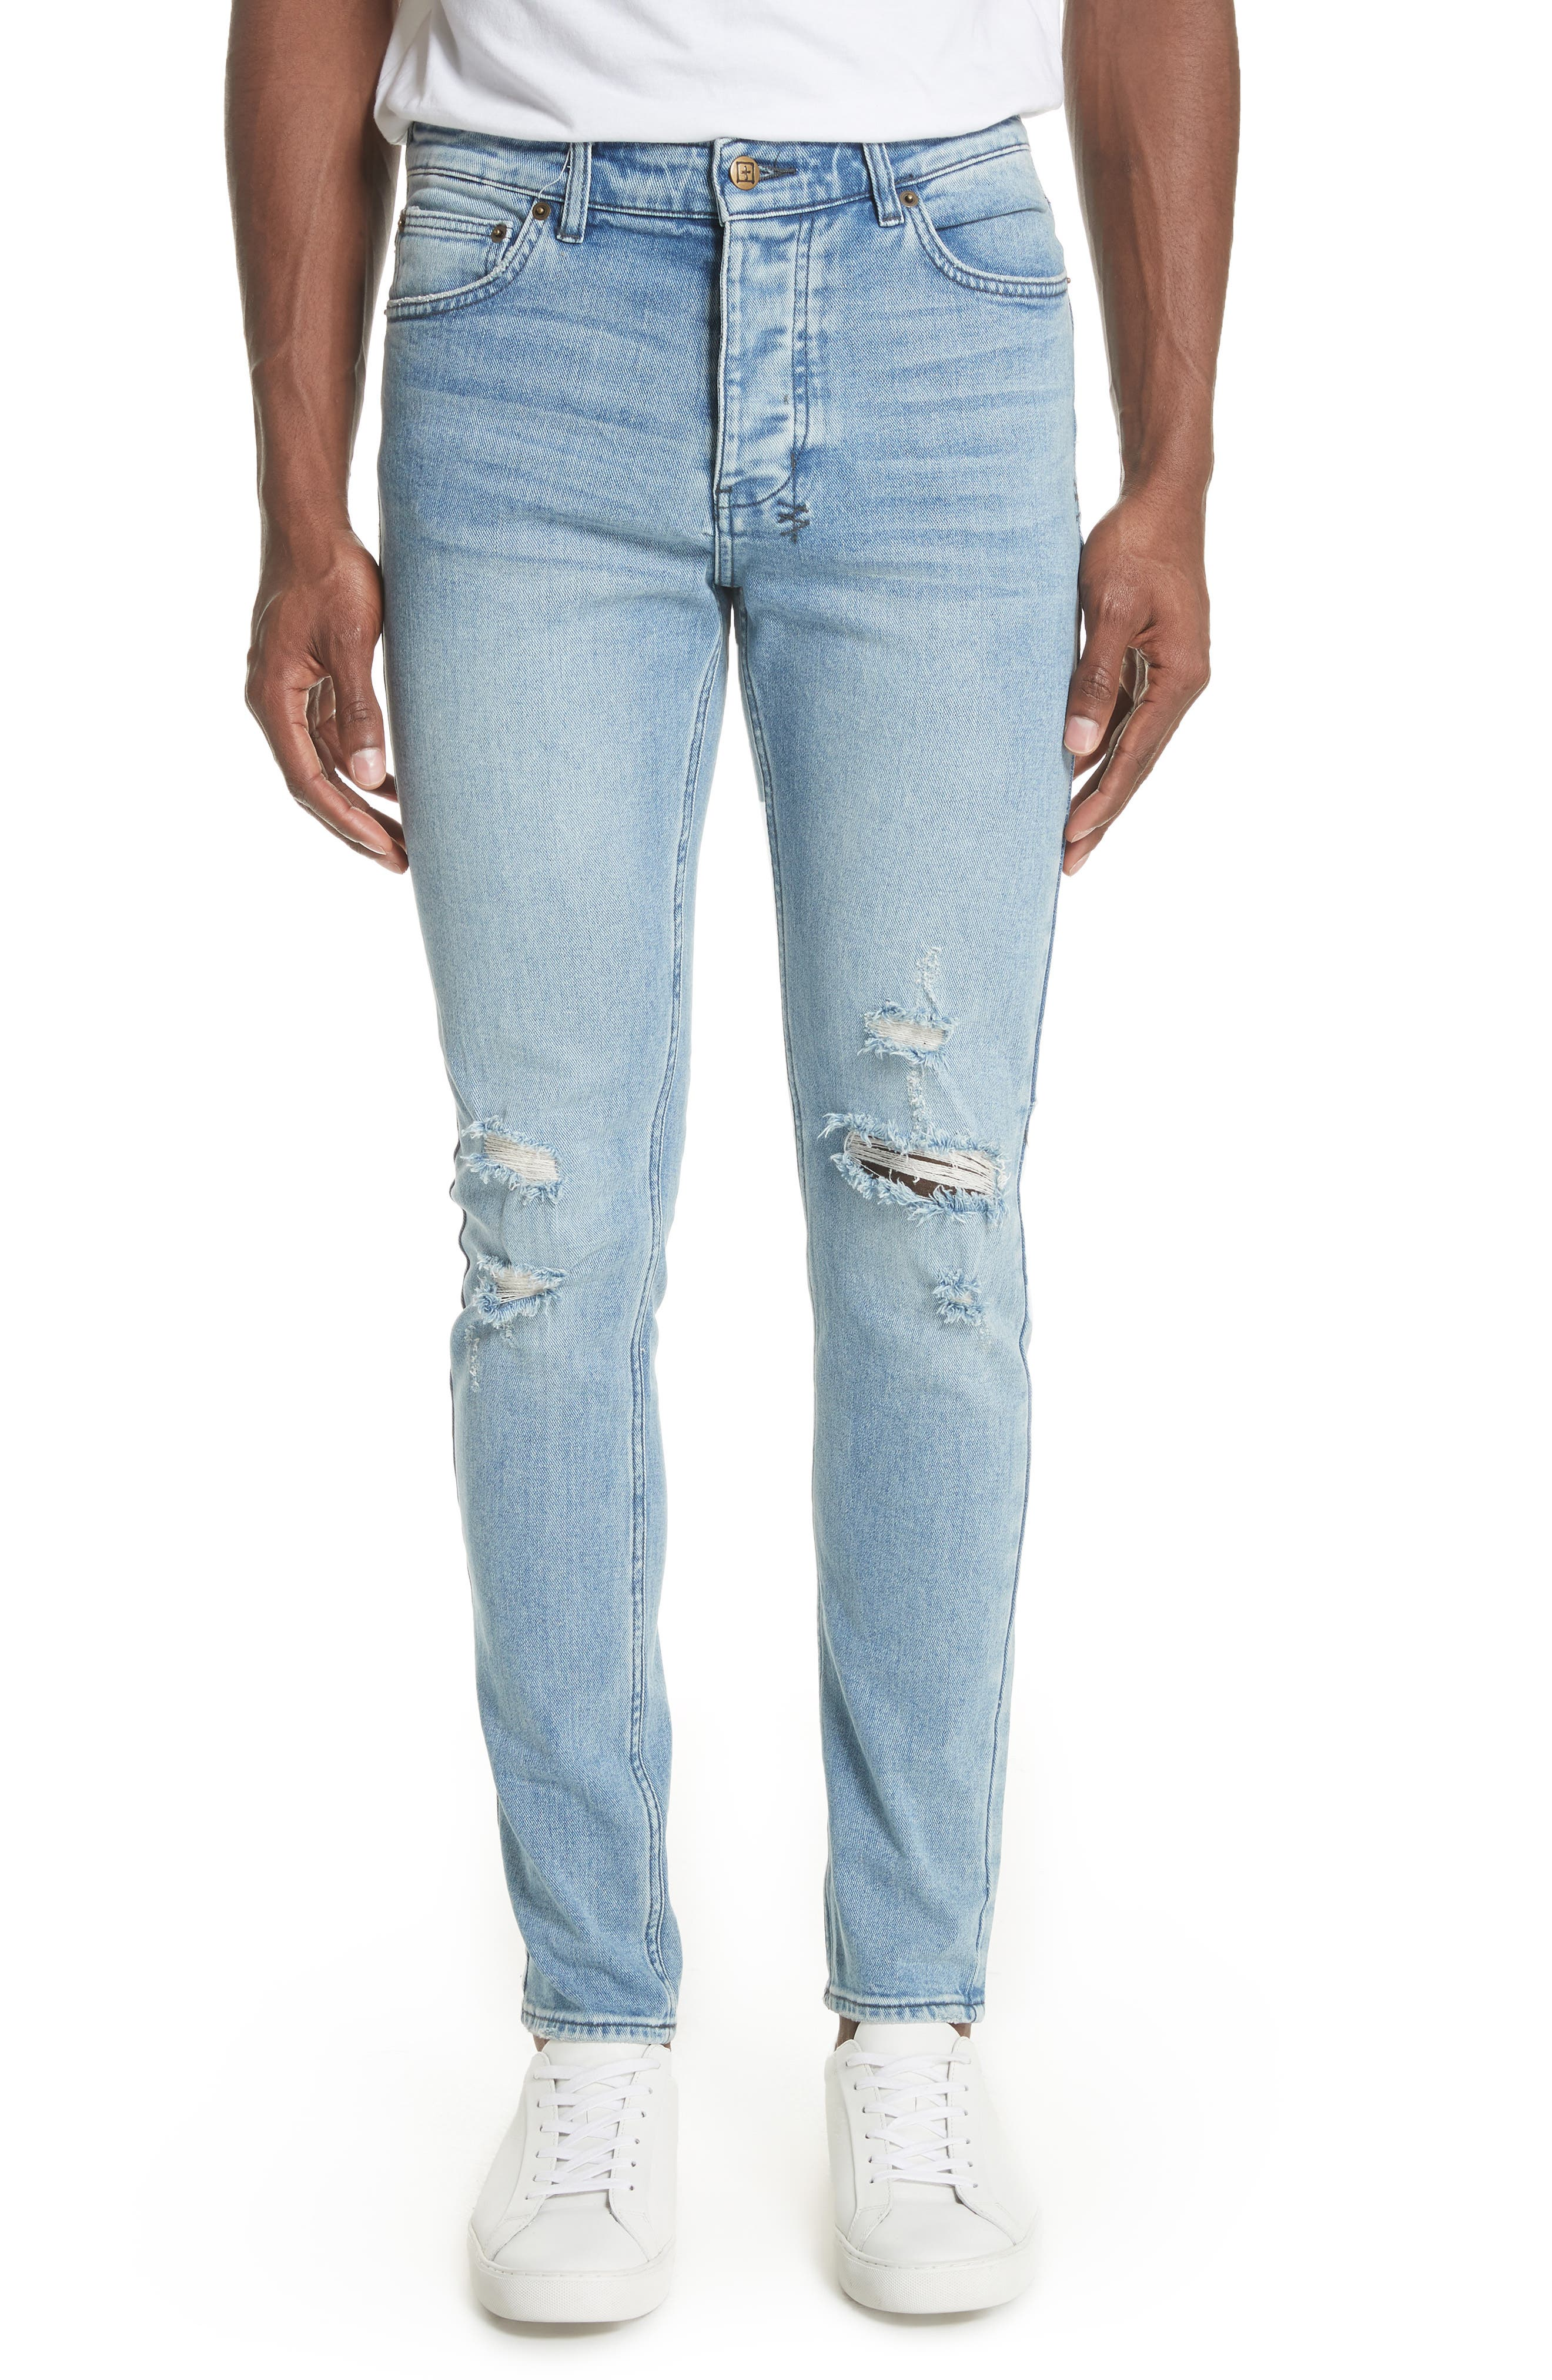 Chitch Philly Jeans,                             Main thumbnail 1, color,                             BLUE